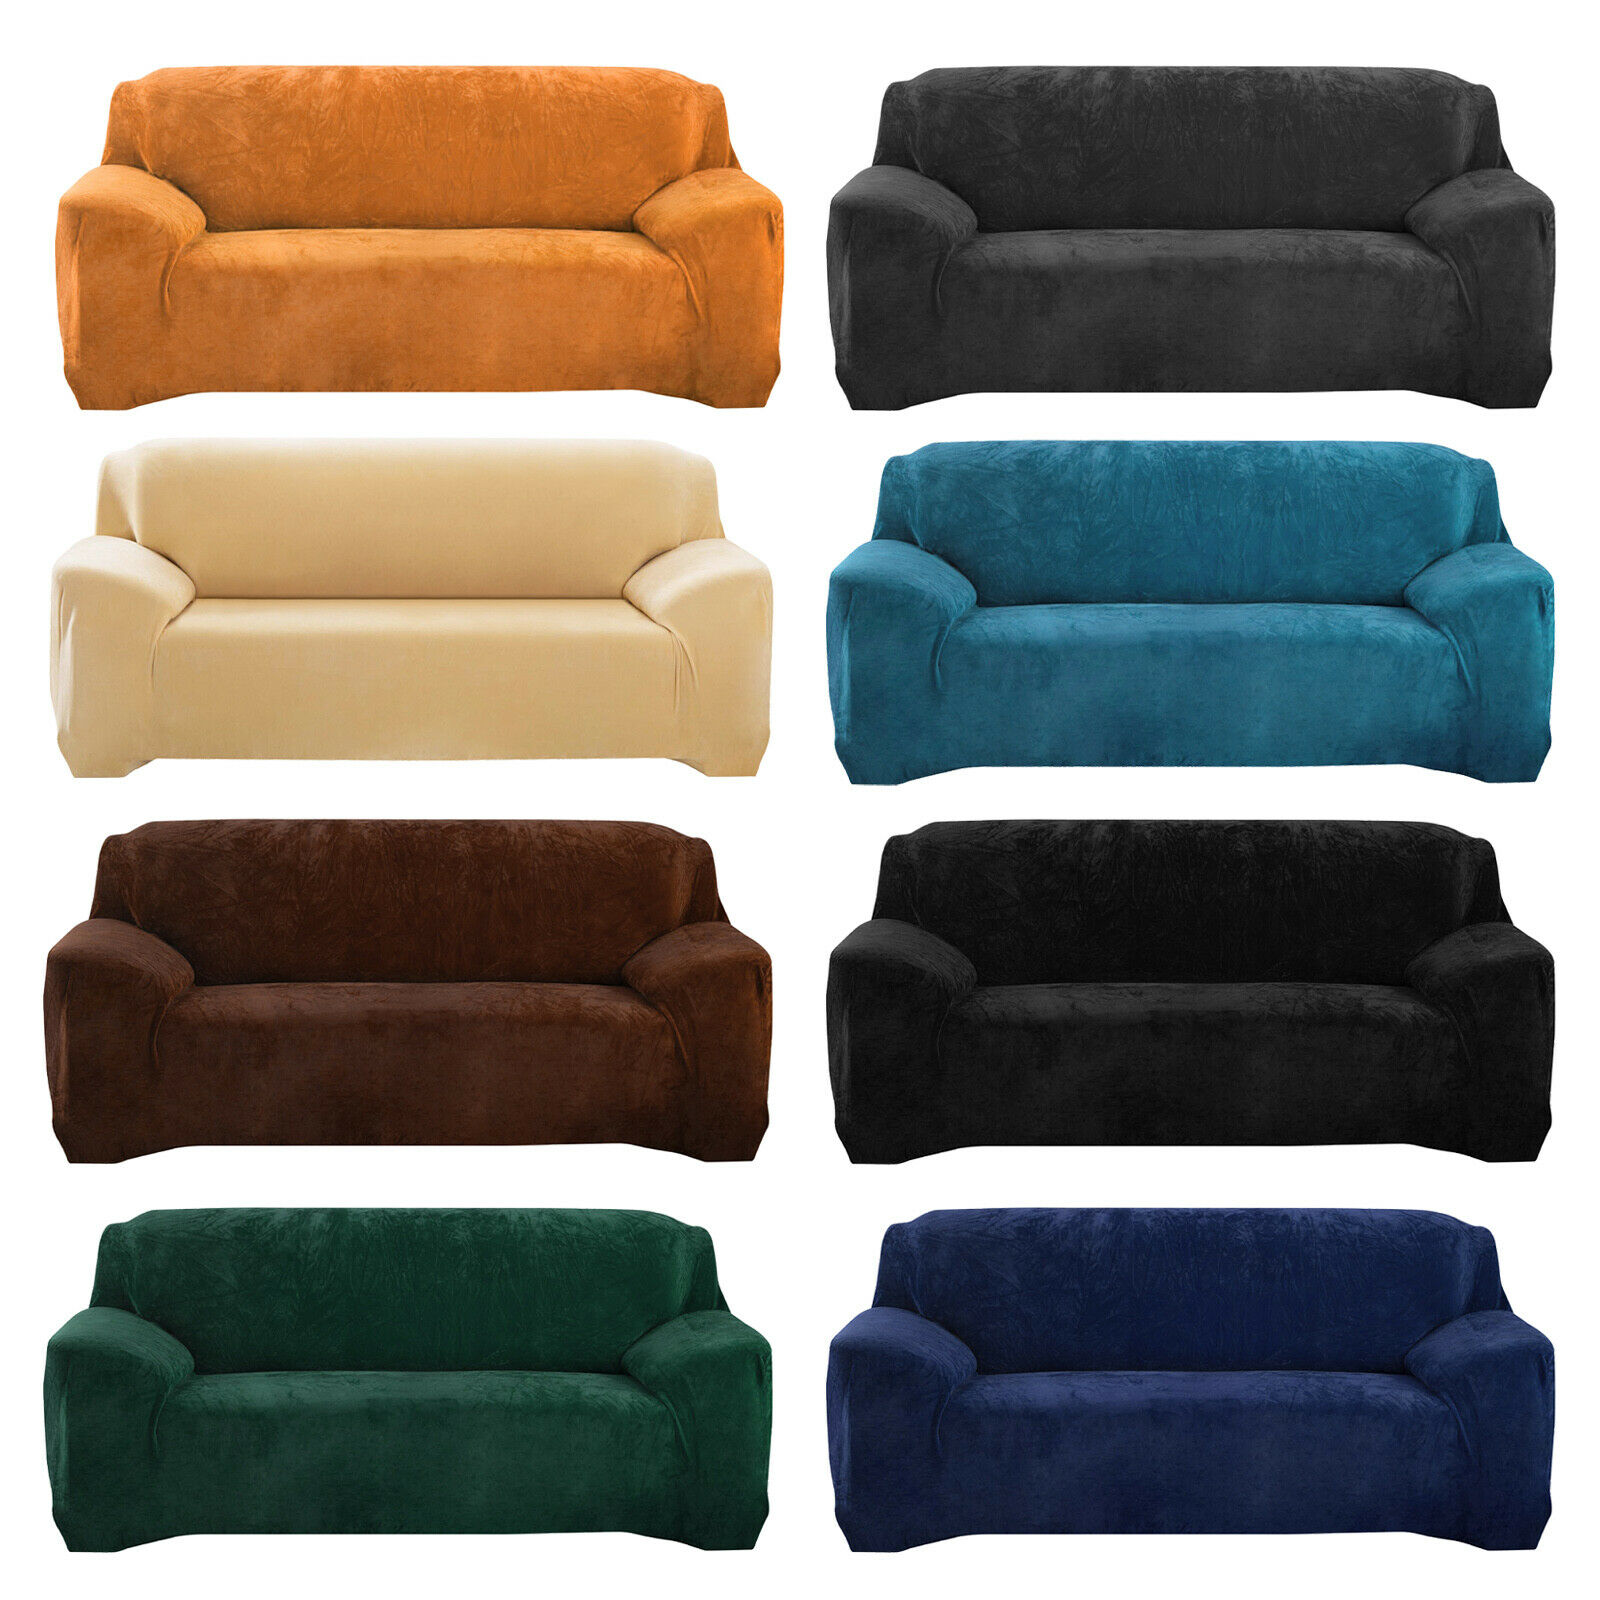 1 2 3 4 seater velvet stretch sofa covers chair slipcover furniture protector